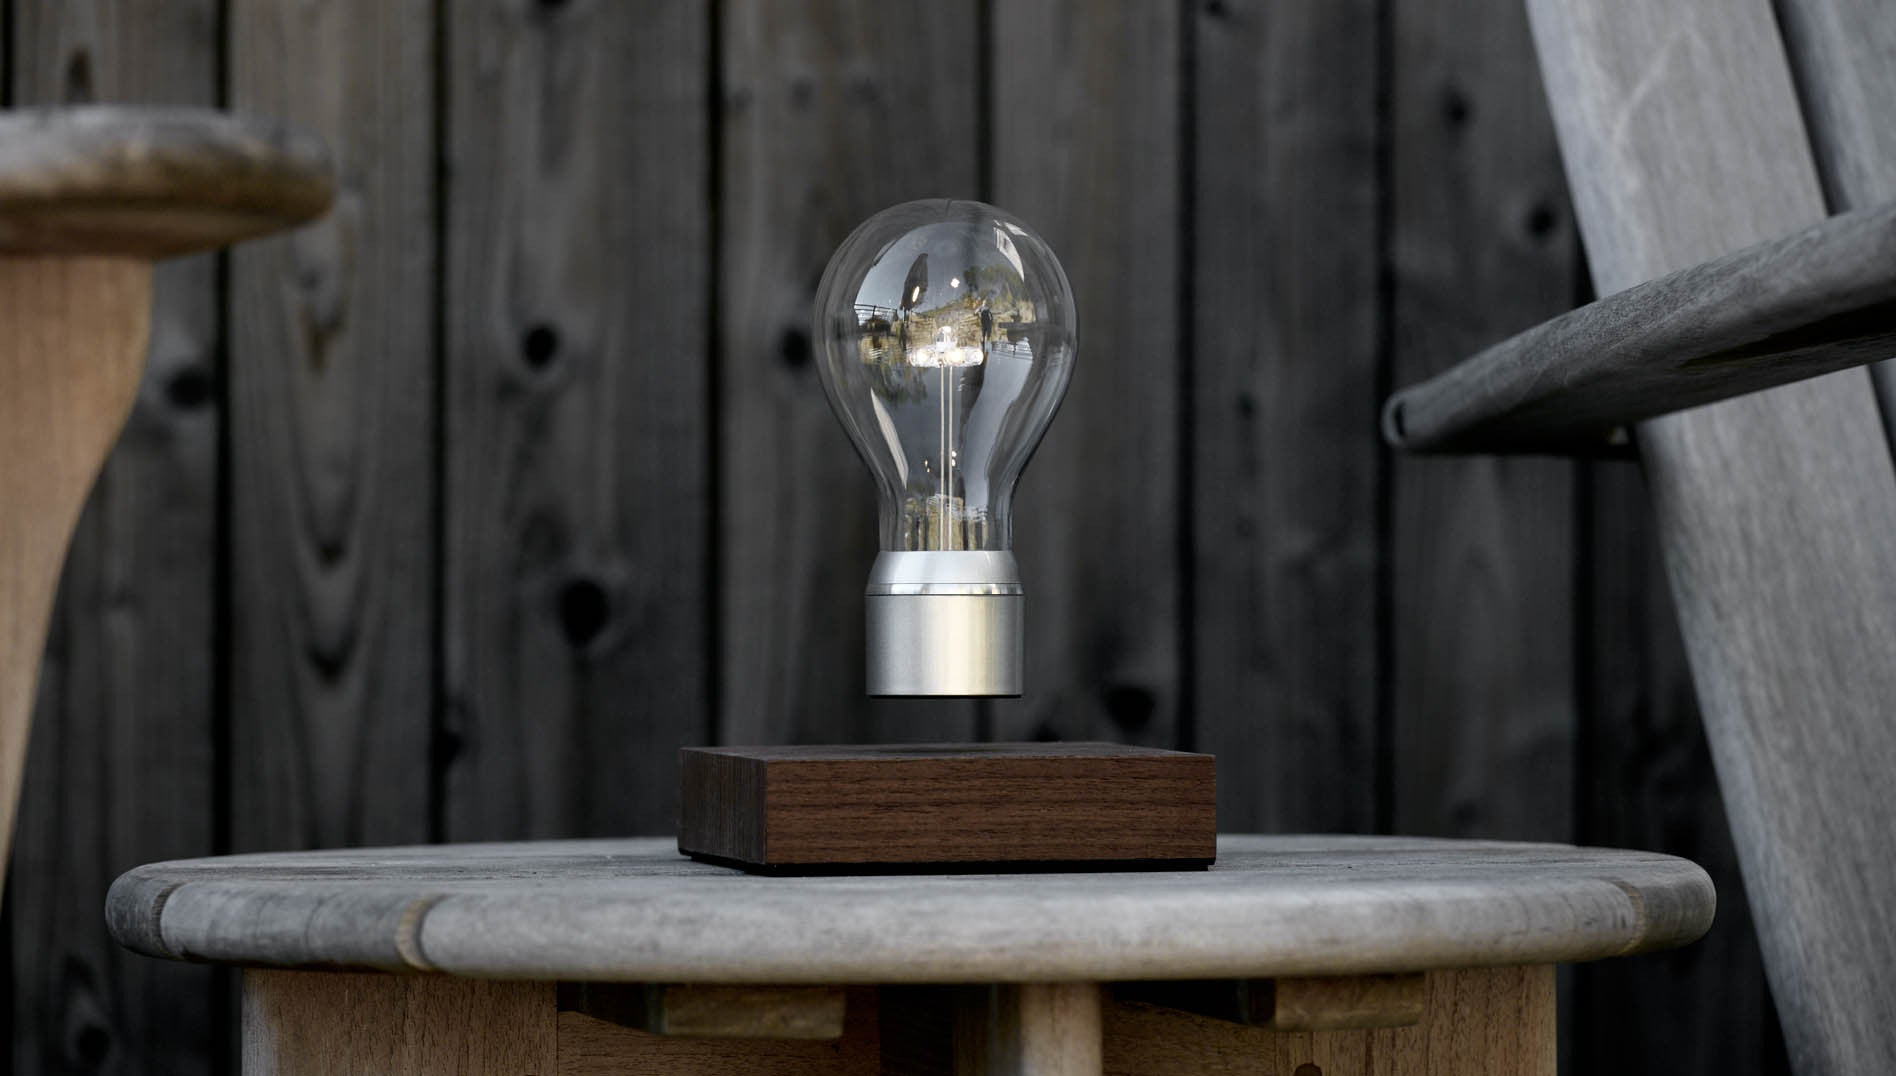 FLYTE Manhattan - levitating light bulb hovering in the air on the terrace stool